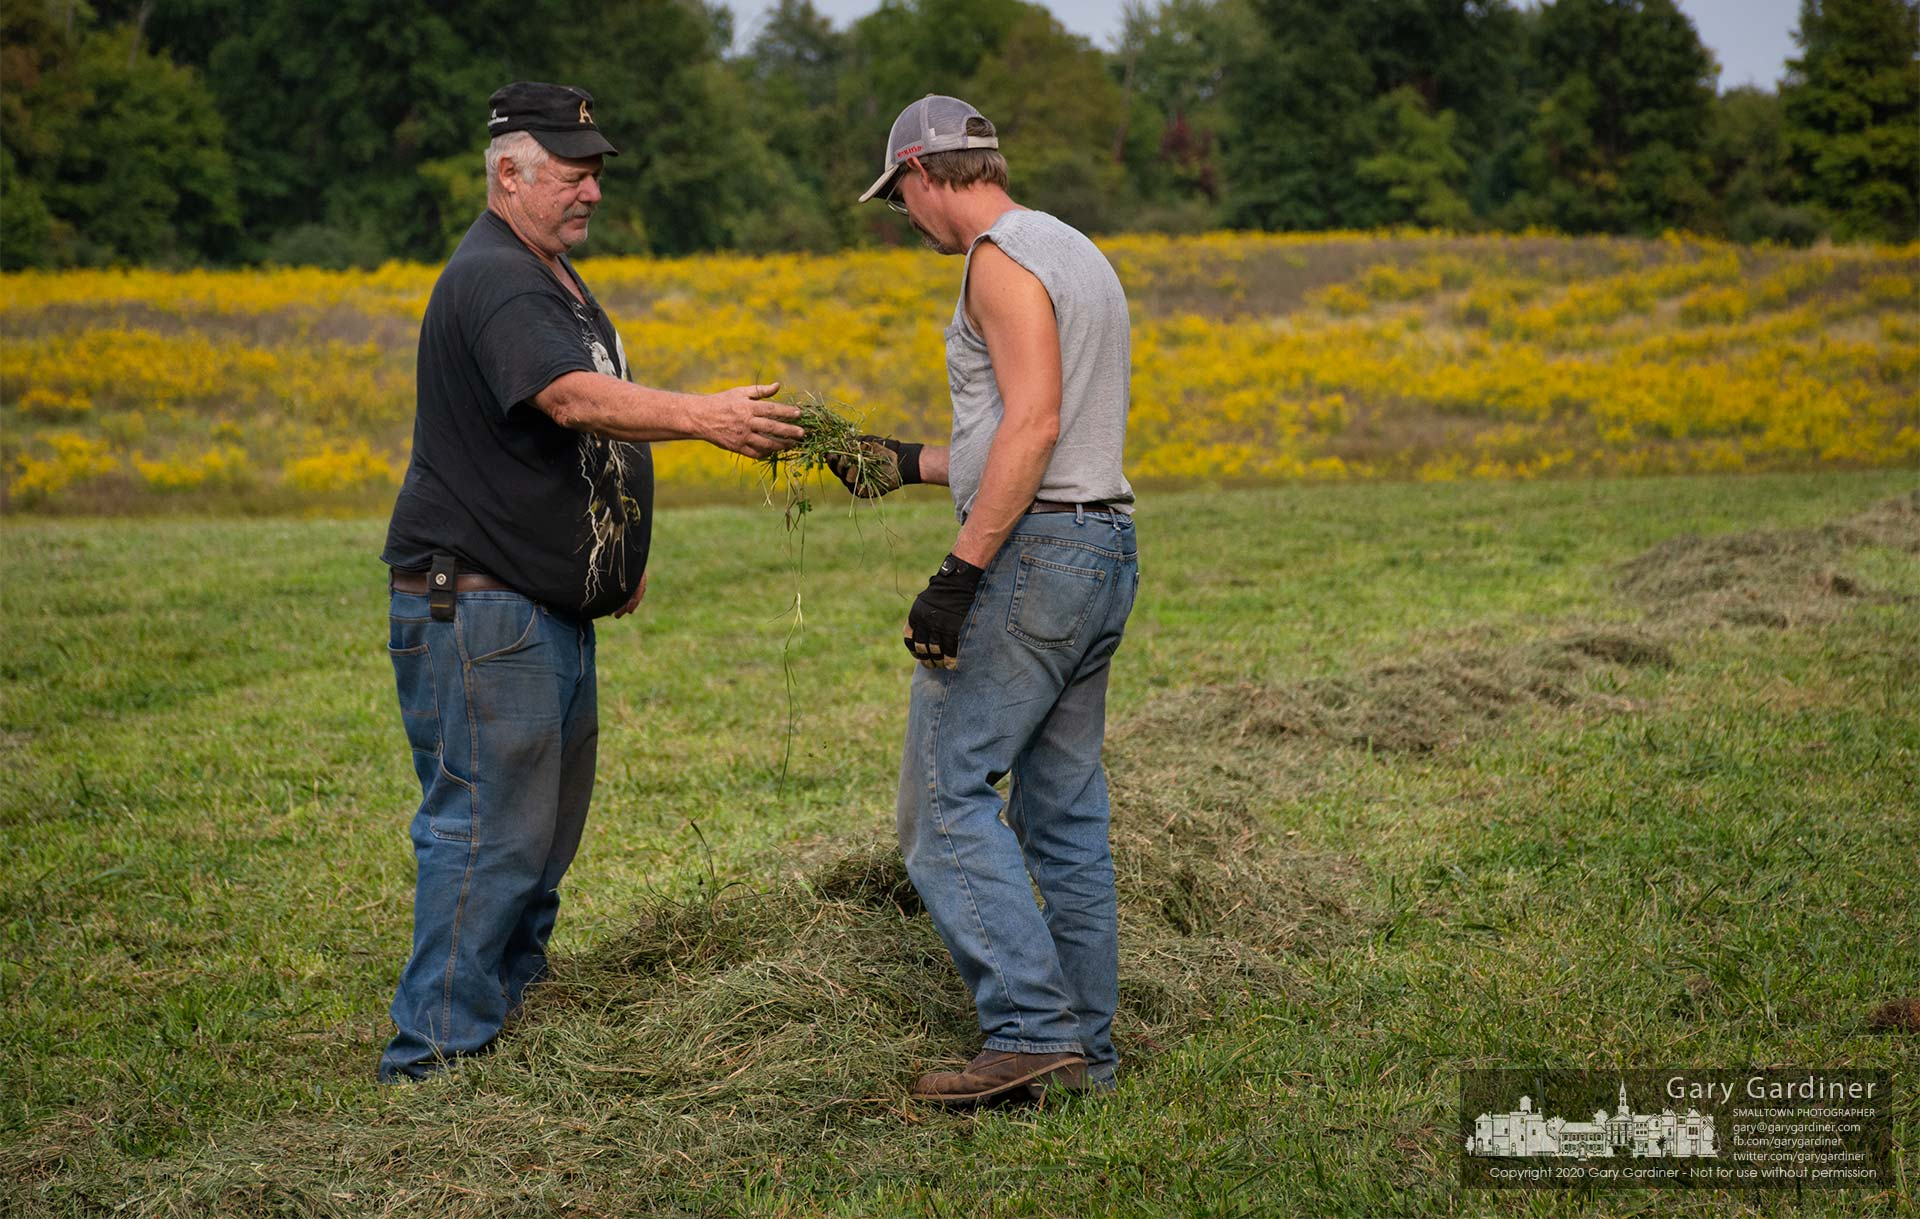 Kevin Scott and Rodney Parker check the moisture content of raked hay on the Sharp Farm before deciding it needs another day of drying before baling. My Final Photo for Sept. 23, 2020.